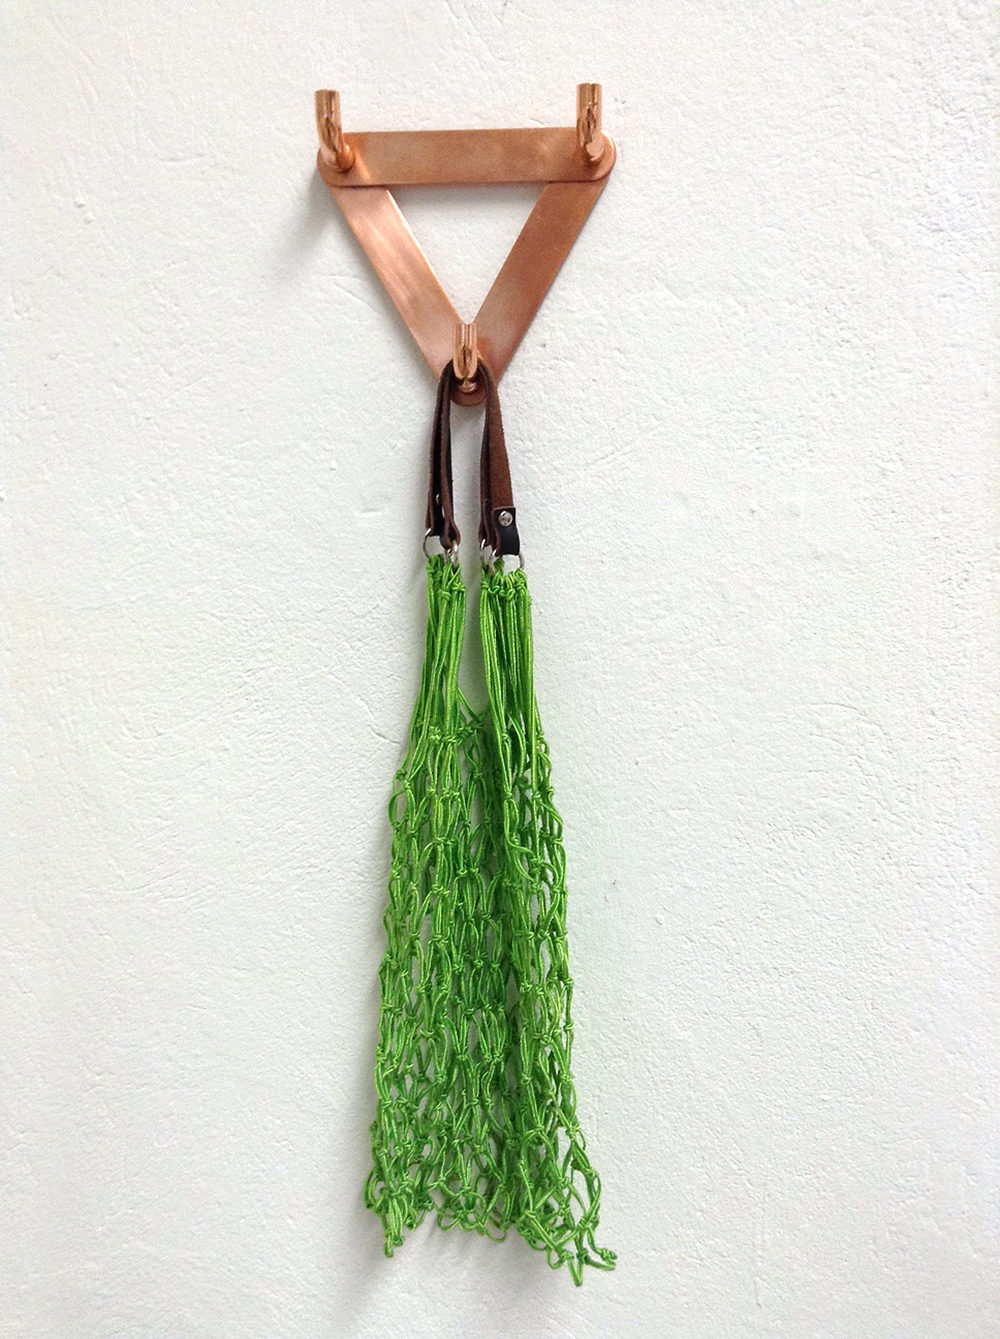 wall hook, recycling copper, fastener, 15 x 13 x 4 cm, 2015, 65 €